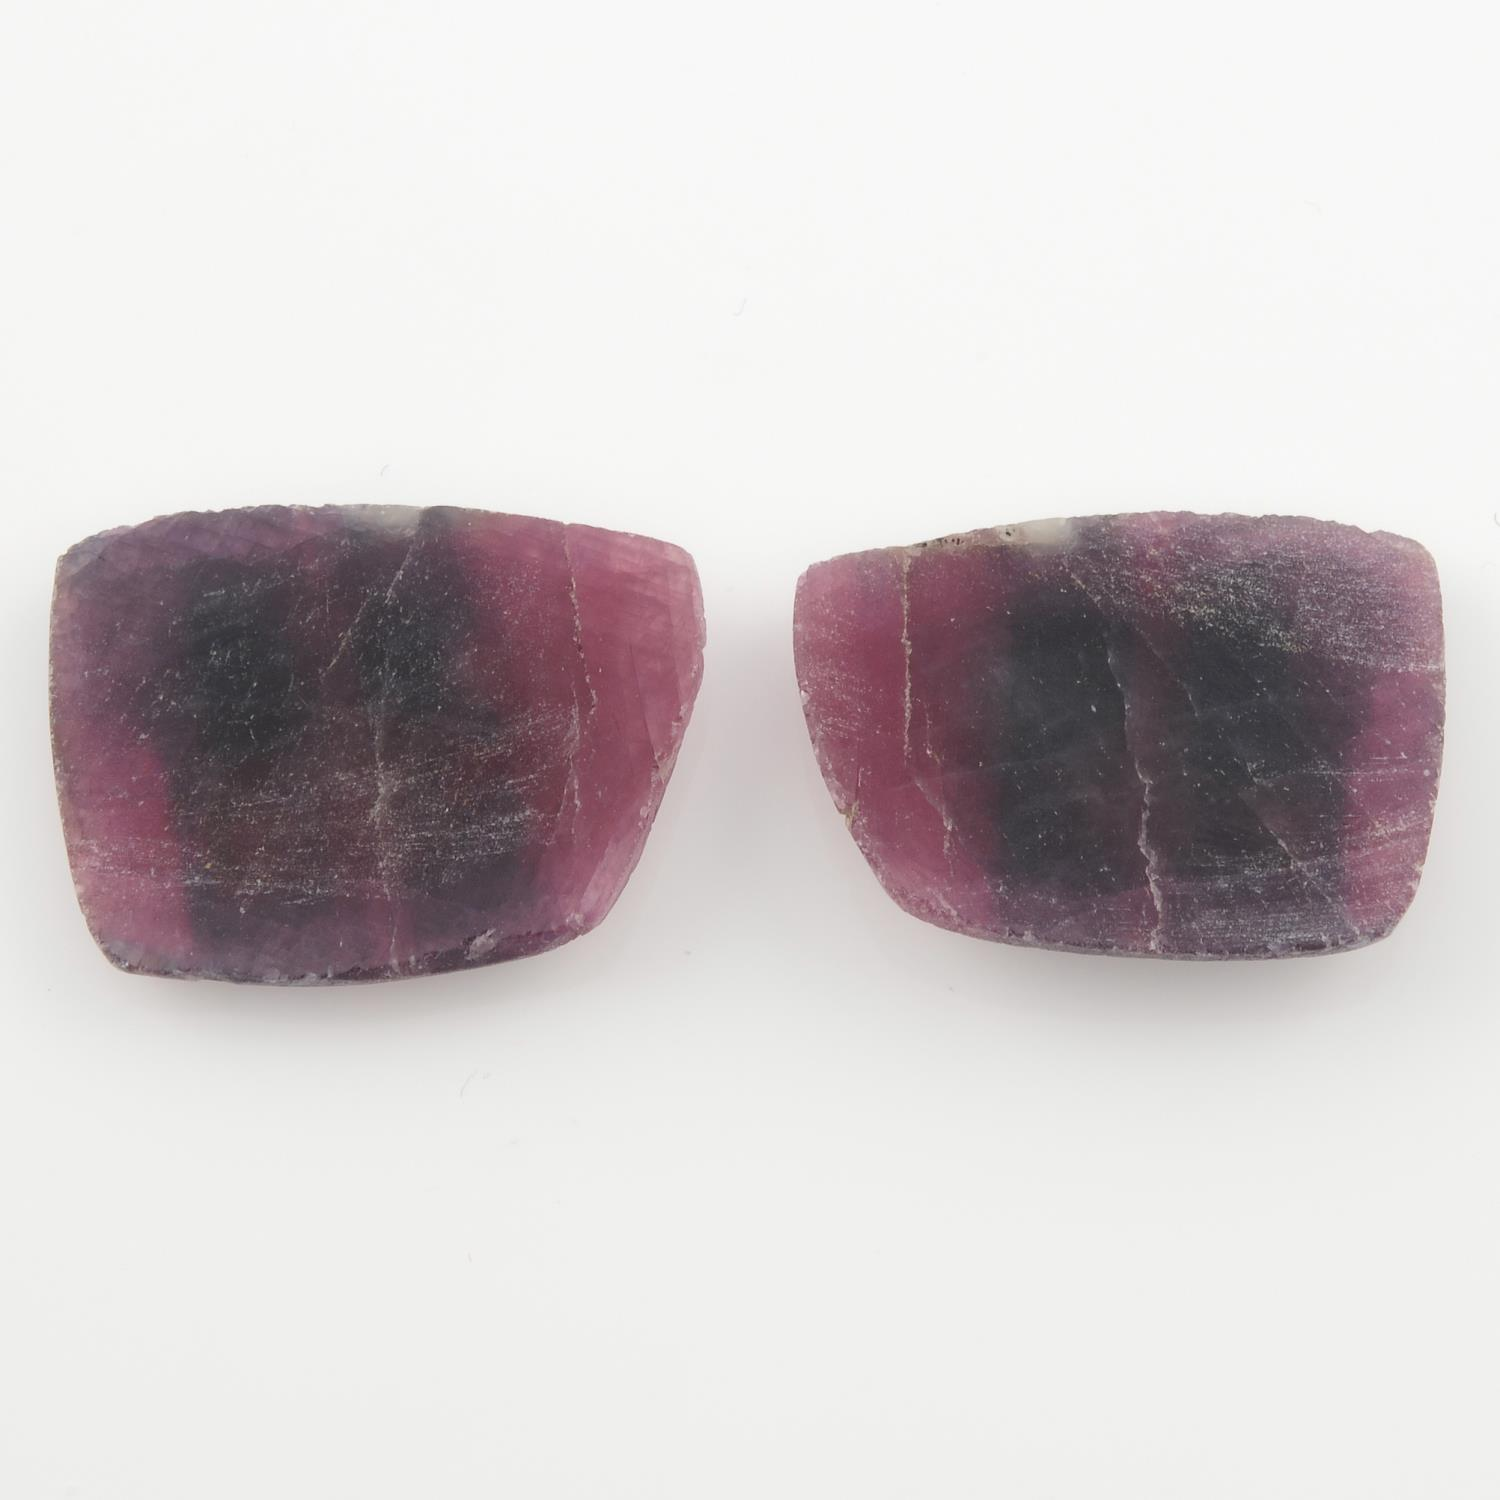 A selection of gemstones, - Image 2 of 3